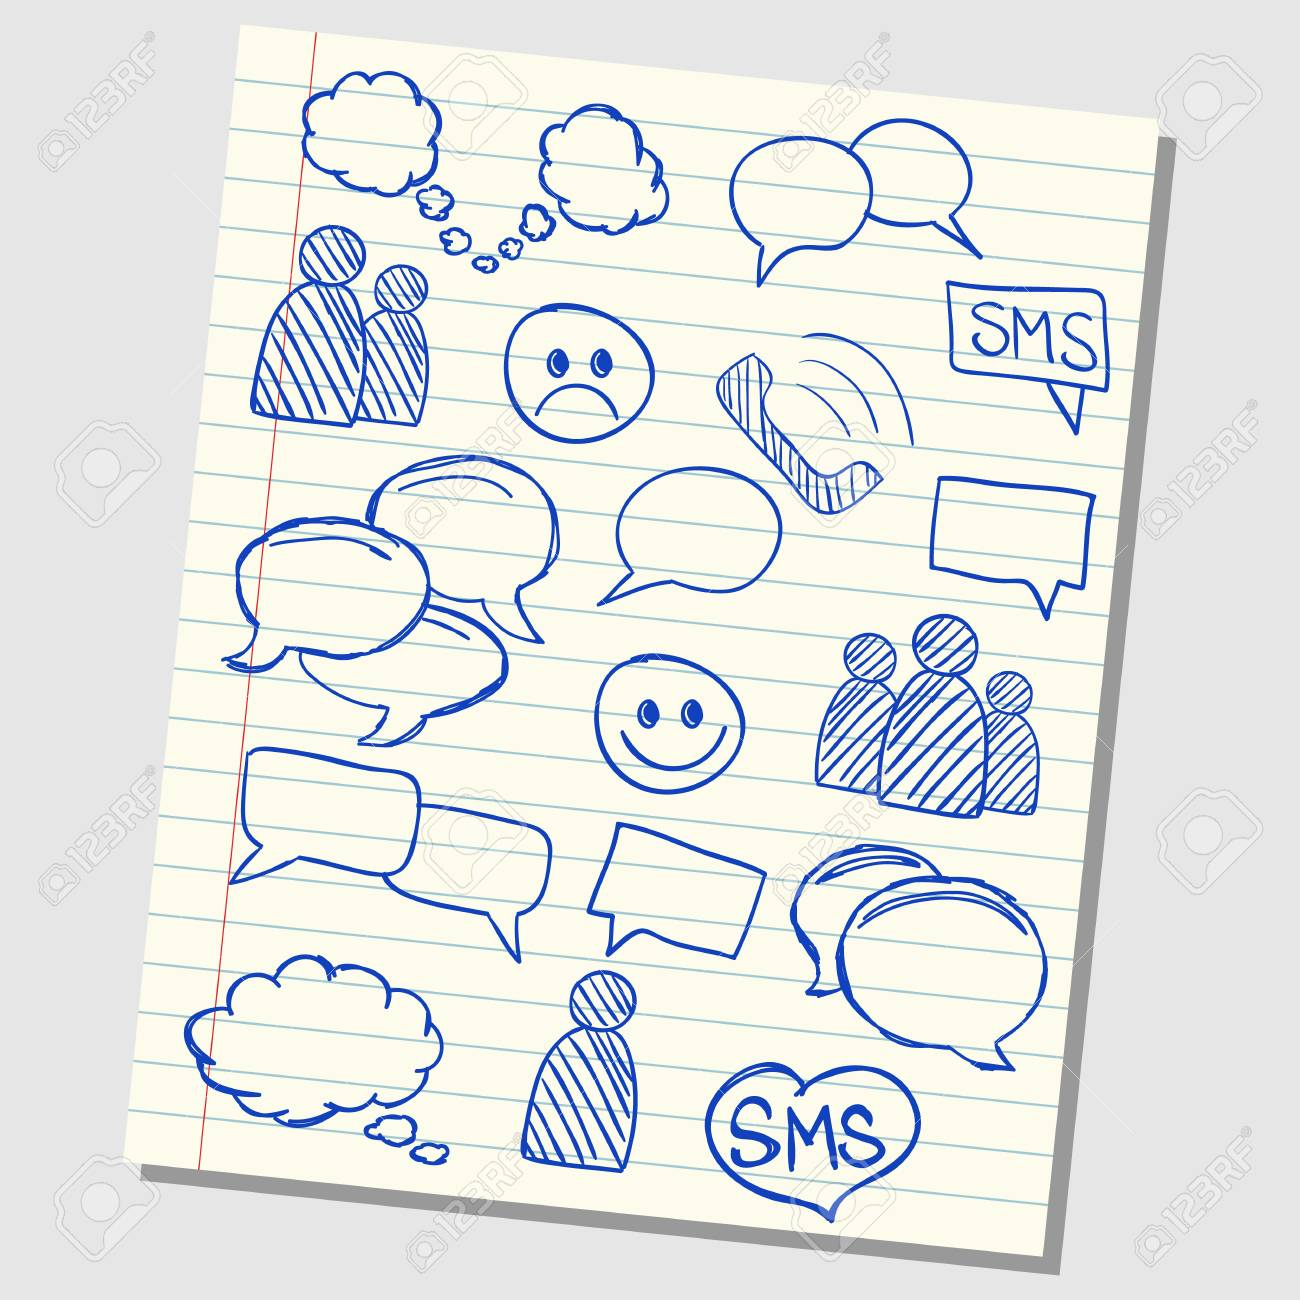 Illustration of communication and speech icons on school lined paper Stock Vector - 19846620